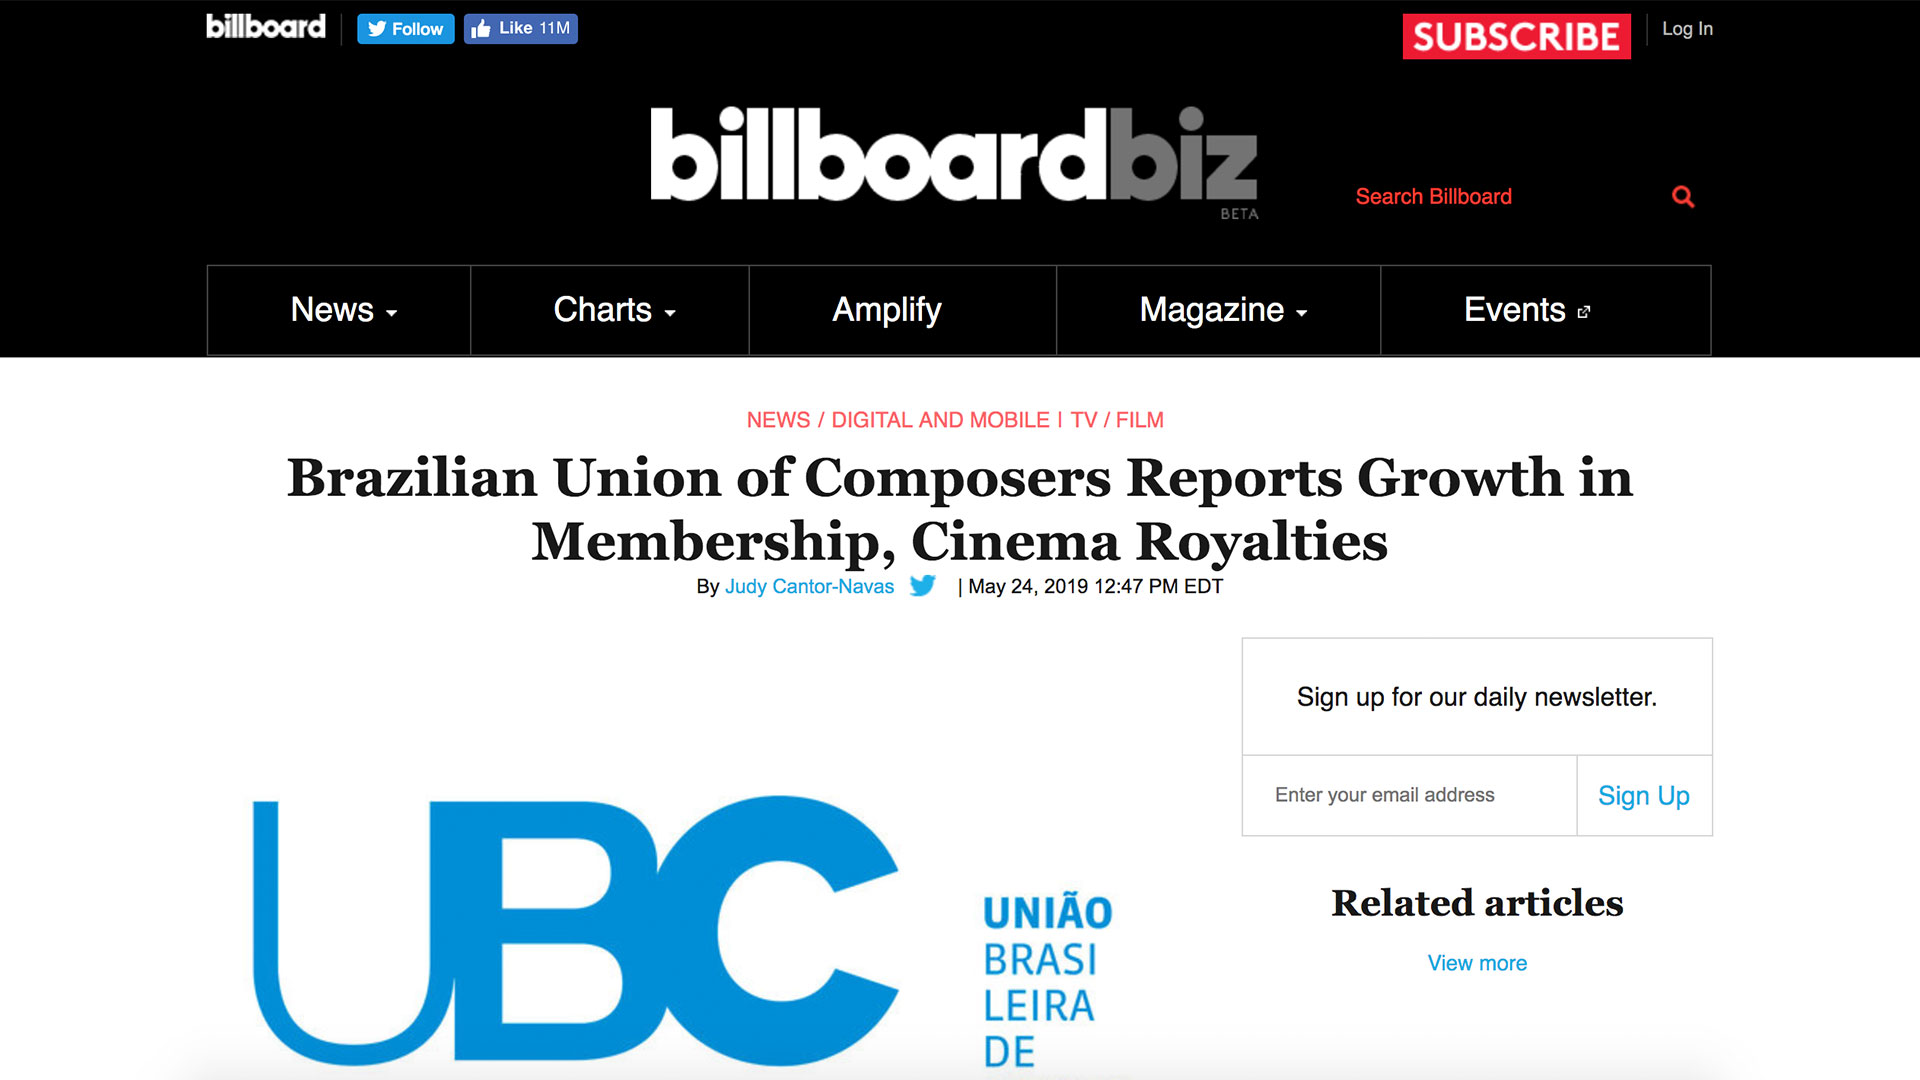 Fairness Rocks News Brazilian Union of Composers Reports Growth in Membership, Cinema Royalties